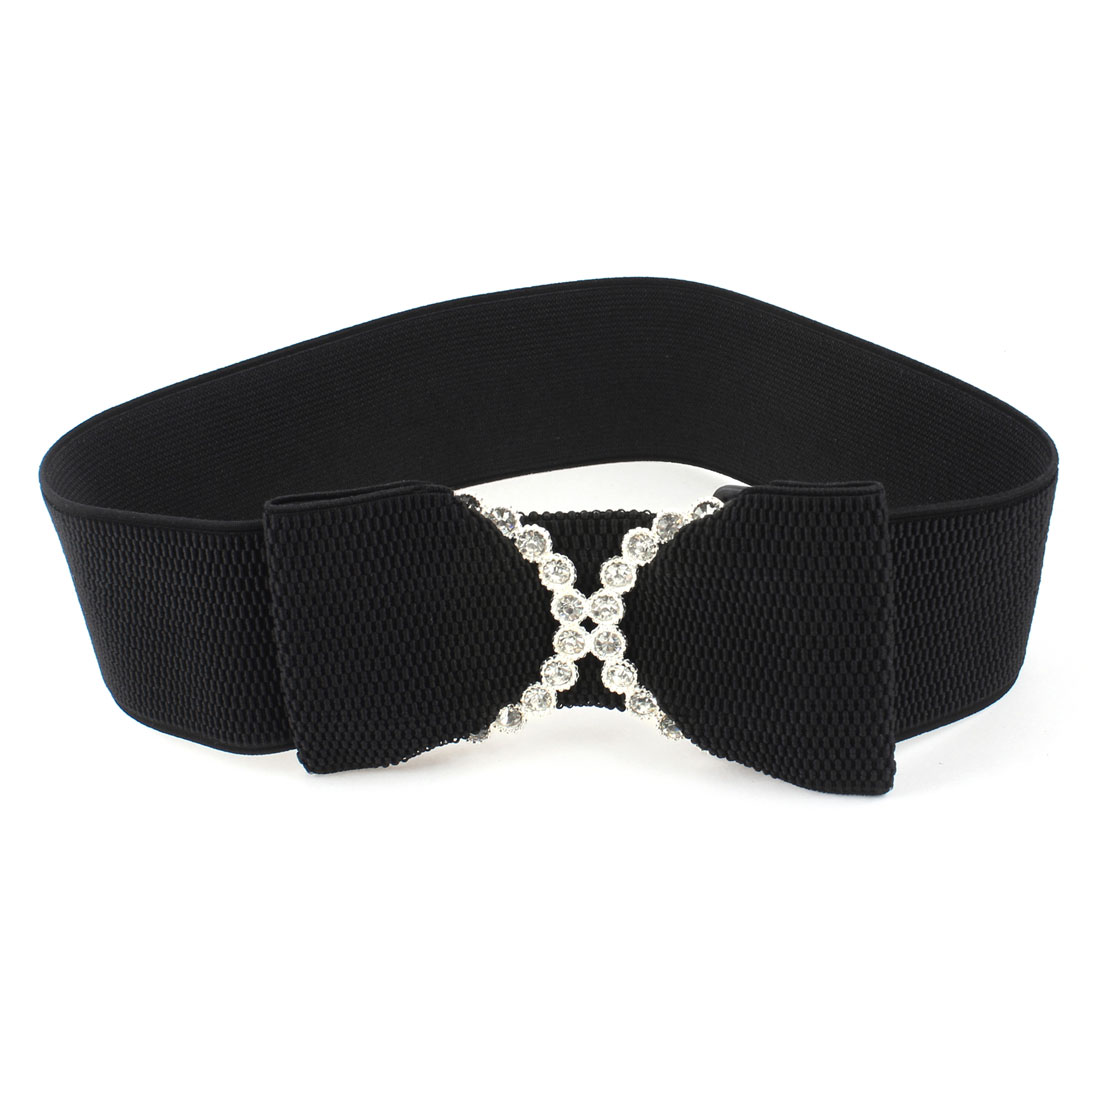 Ladies Rhinestones Detailing Bowknot Press Stud Button Elastic Waist Belt Black